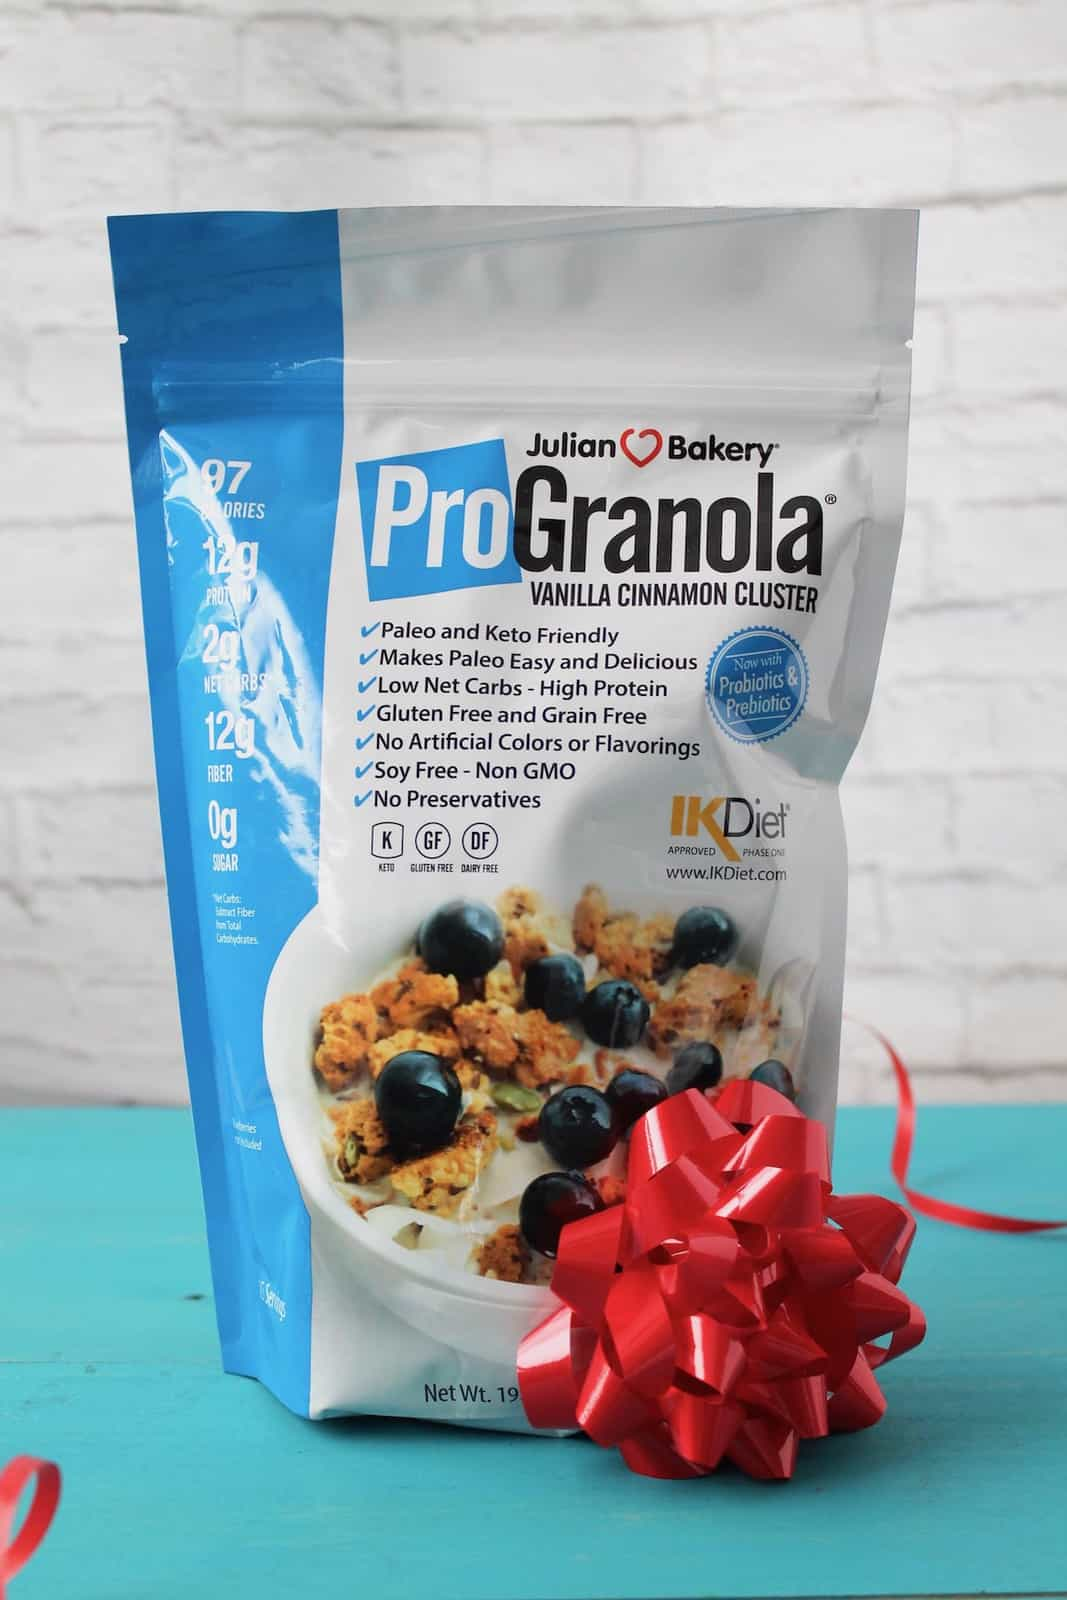 blue and white bag of keto granola with a red bow on it on a teal wooden table with a white brick background